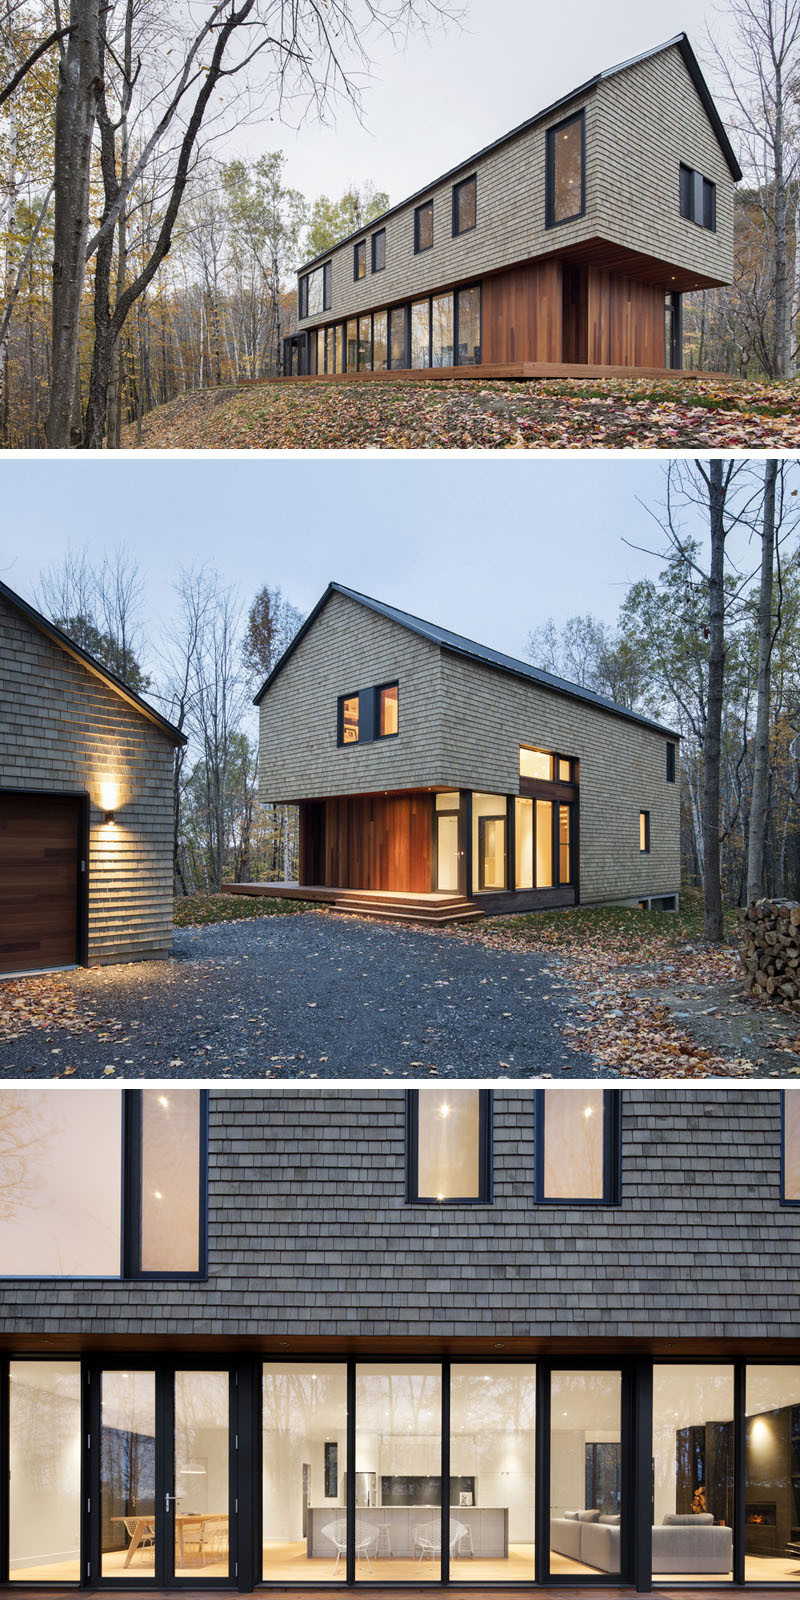 13 Examples Of Modern Houses With Wooden Shingles on Modern House Siding Ideas  id=28411